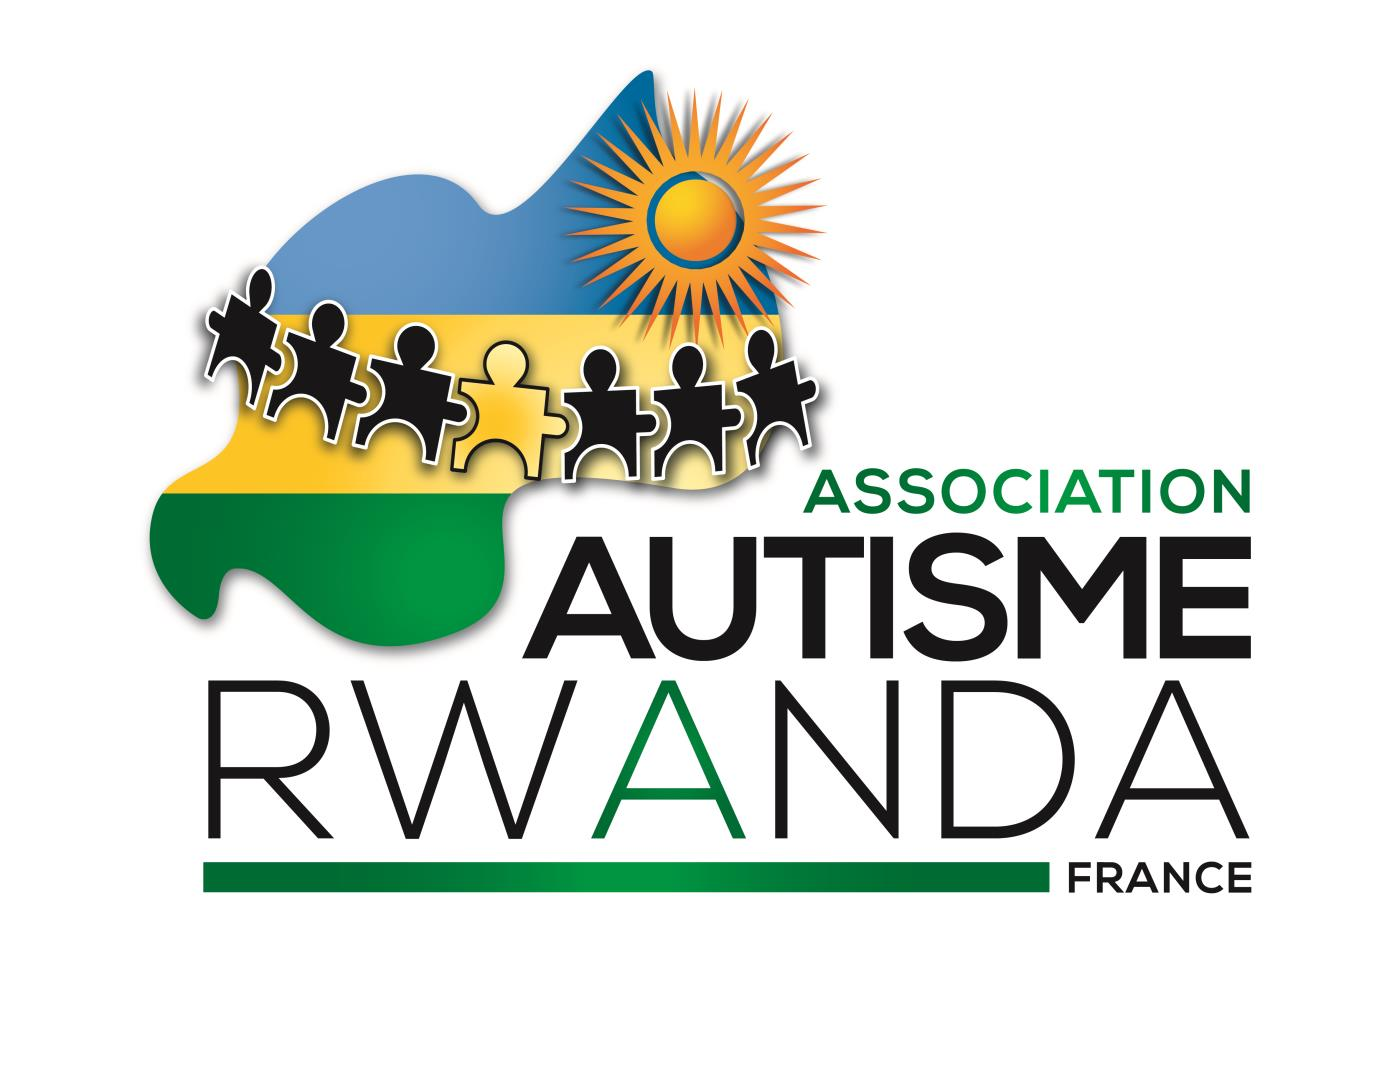 Association - Autisme Rwanda France